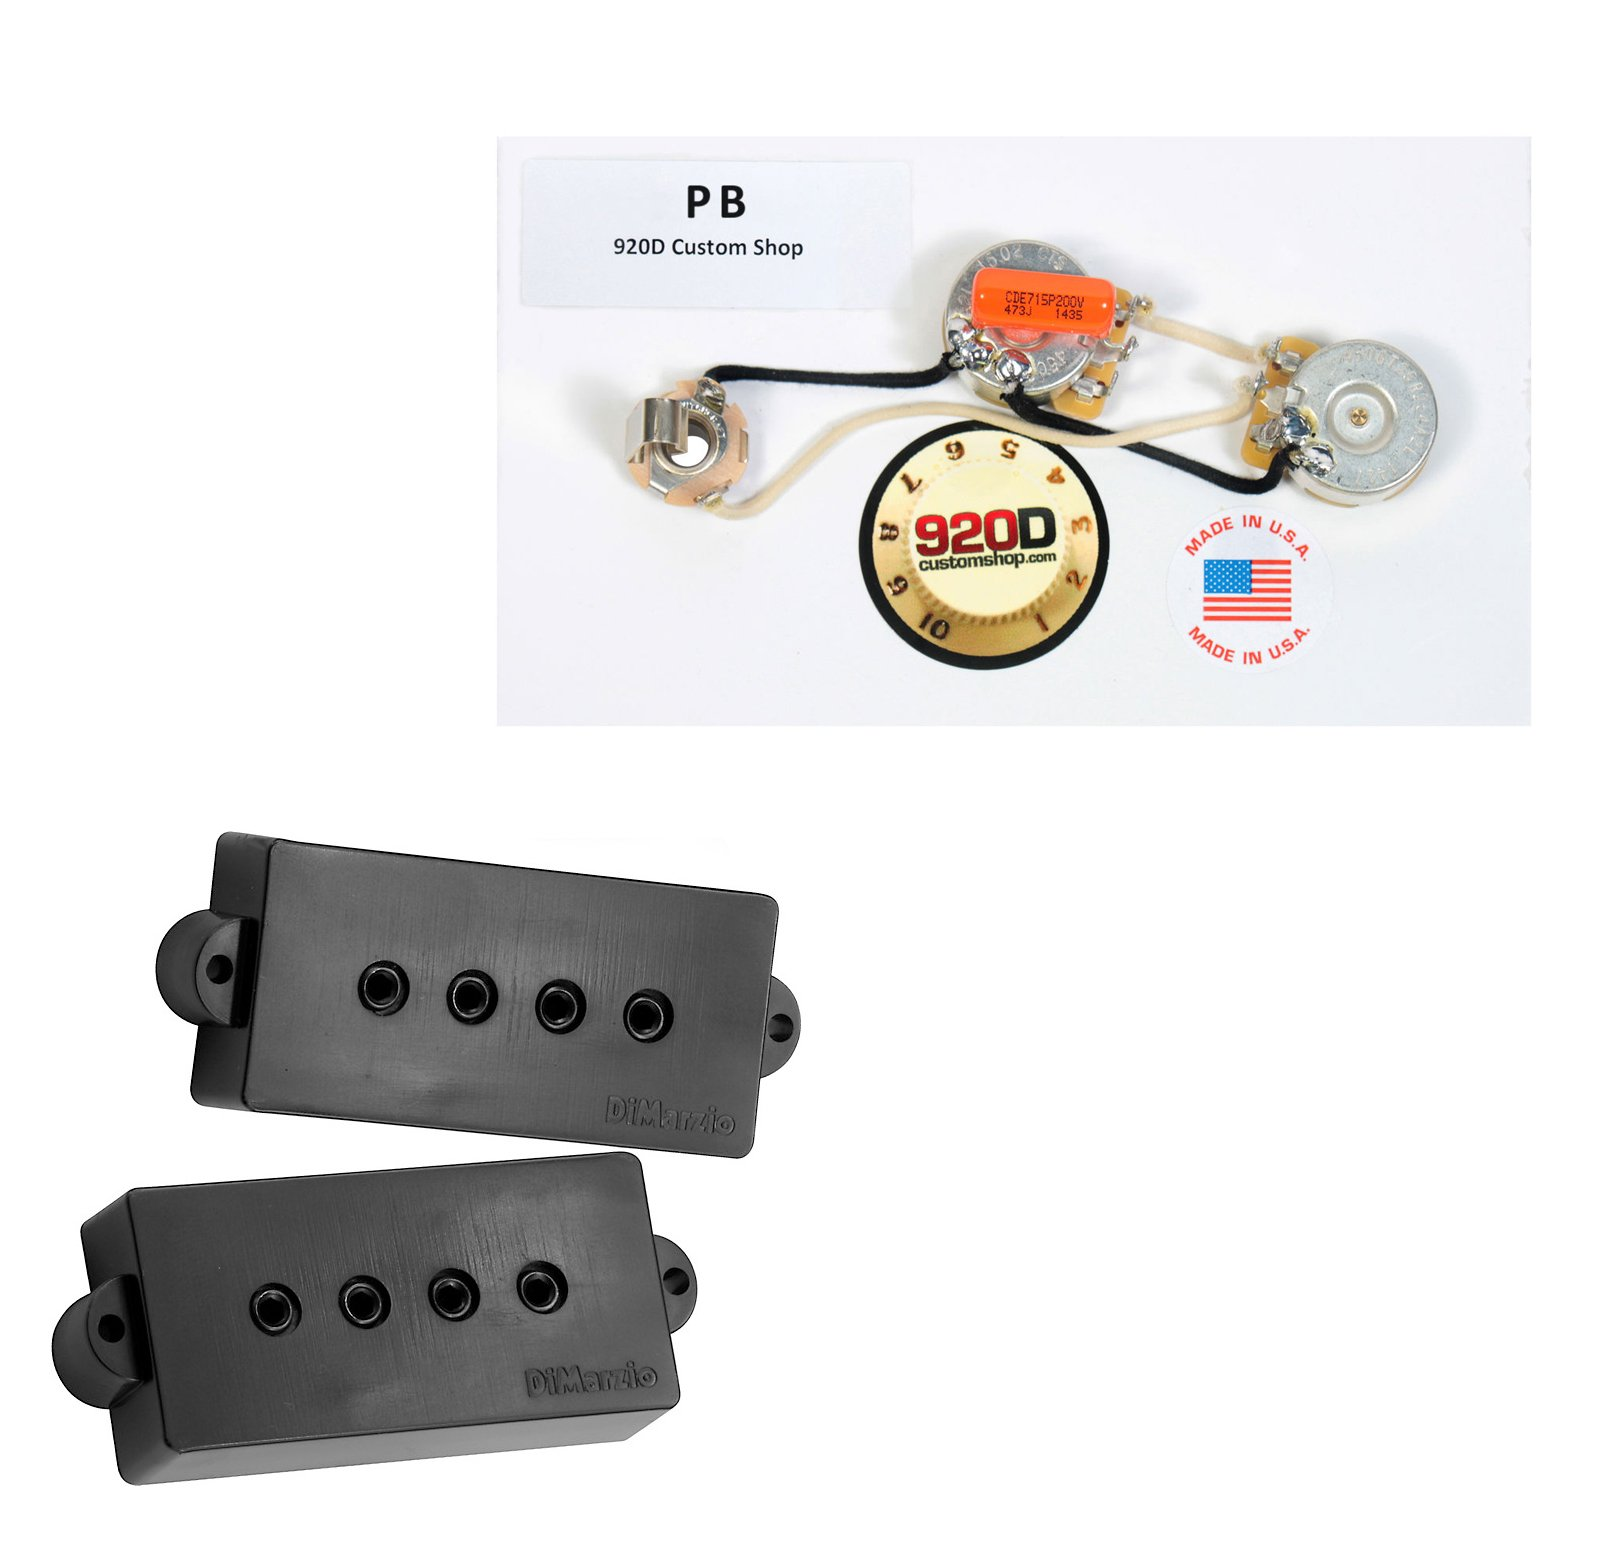 DiMarzio Model P DP122 for Fender P Bass Guitar Black, + PB Wiring Harness